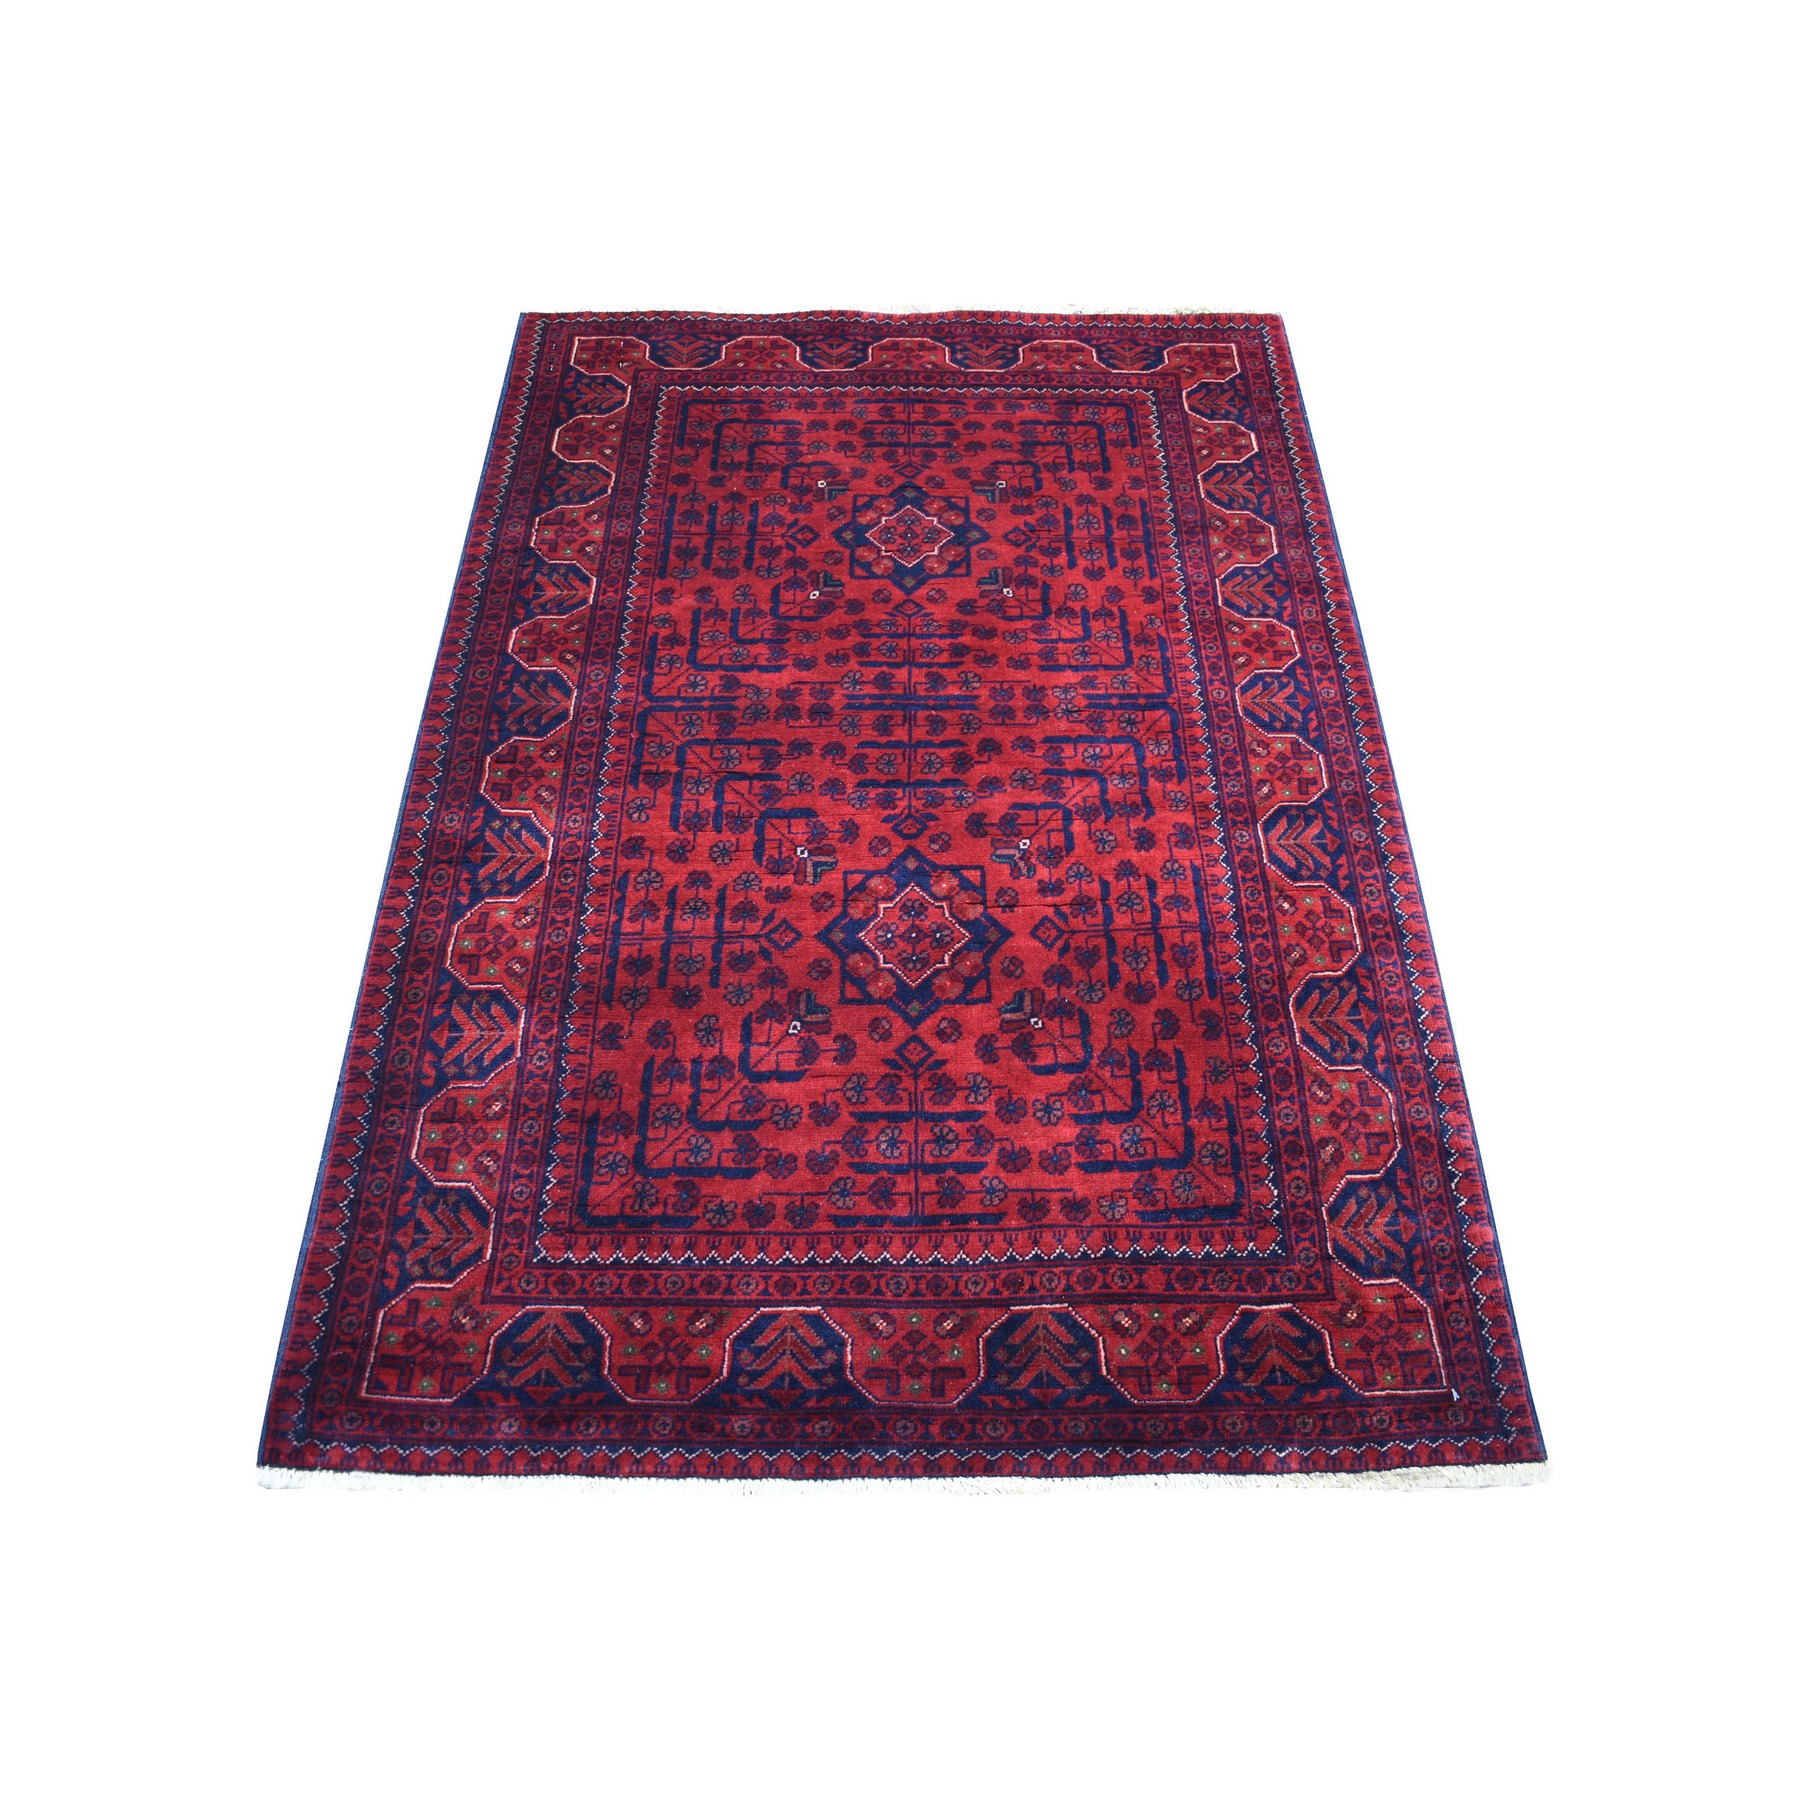 Nomadic And Village Collection Hand Knotted Red Rug No: 1136190